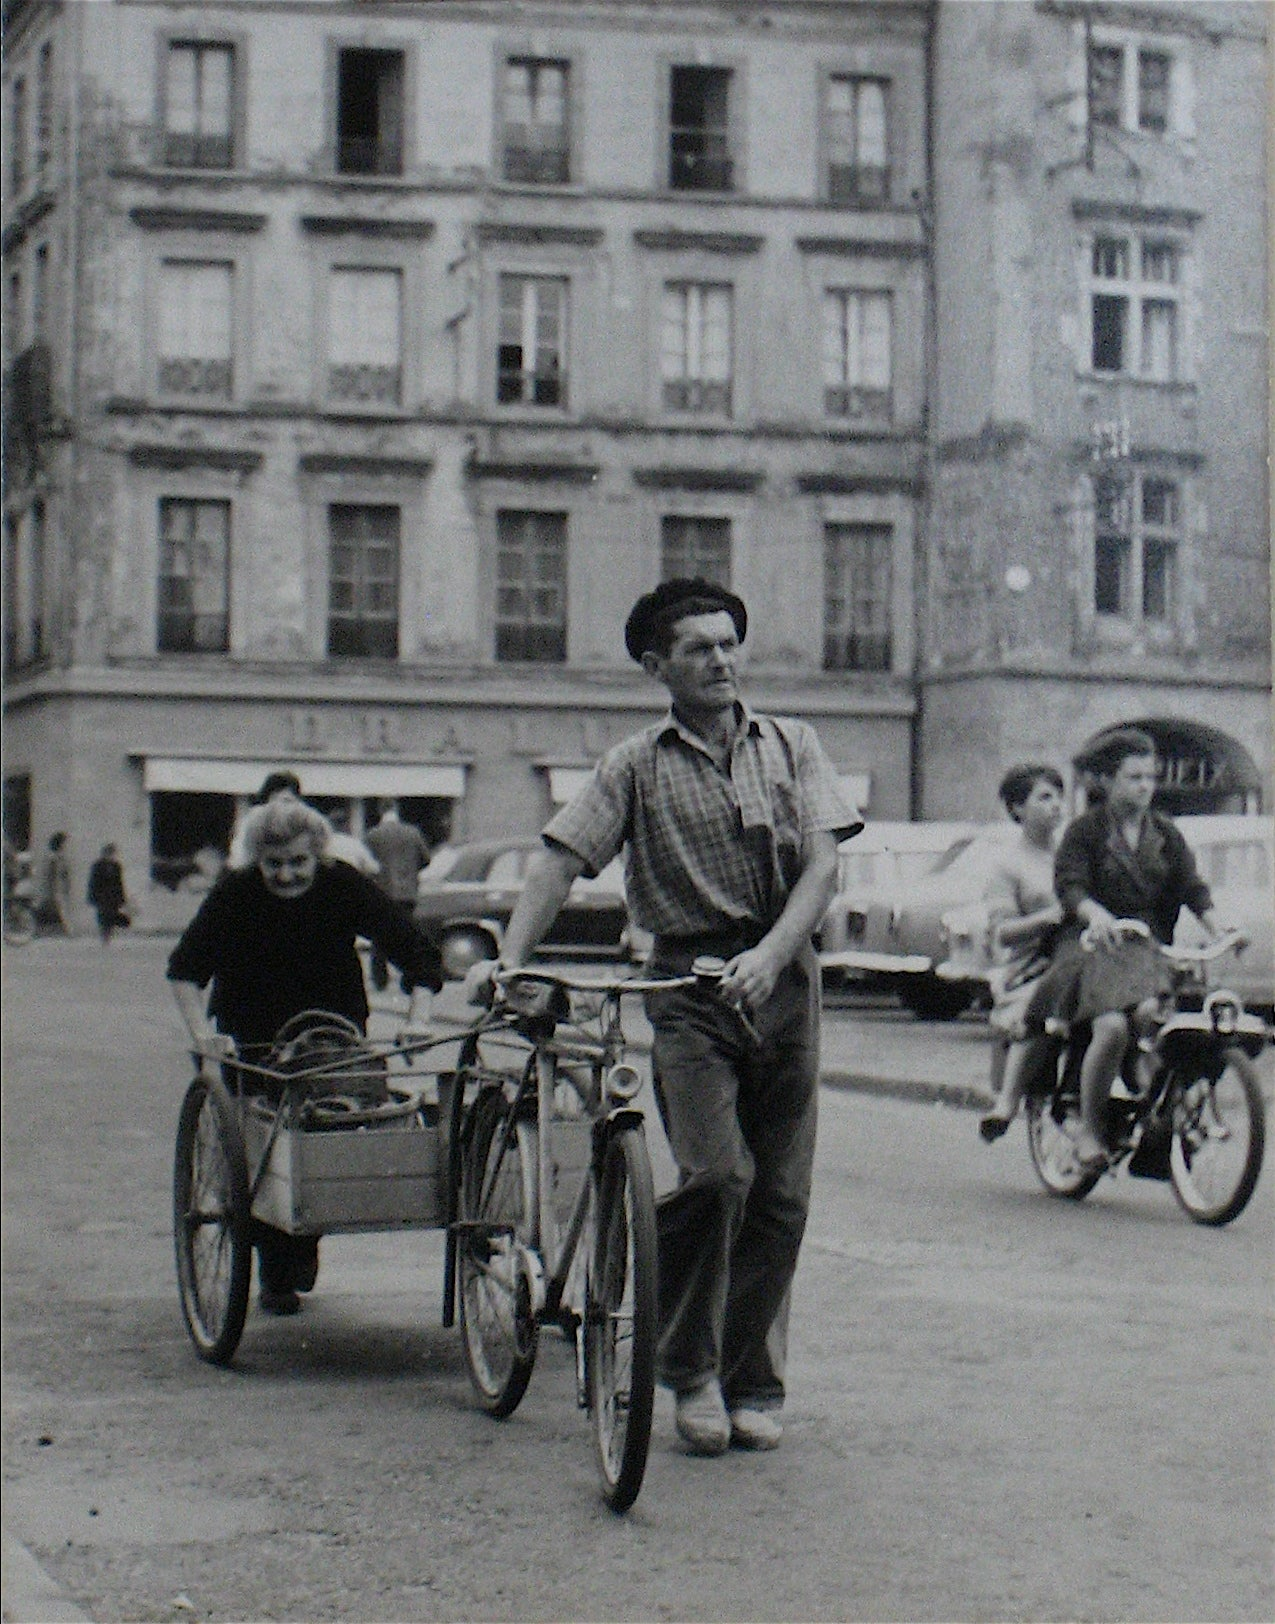 Man with Bike - Yugoslavia <br>1960s Silver Gelatin Print <br><br>#12291